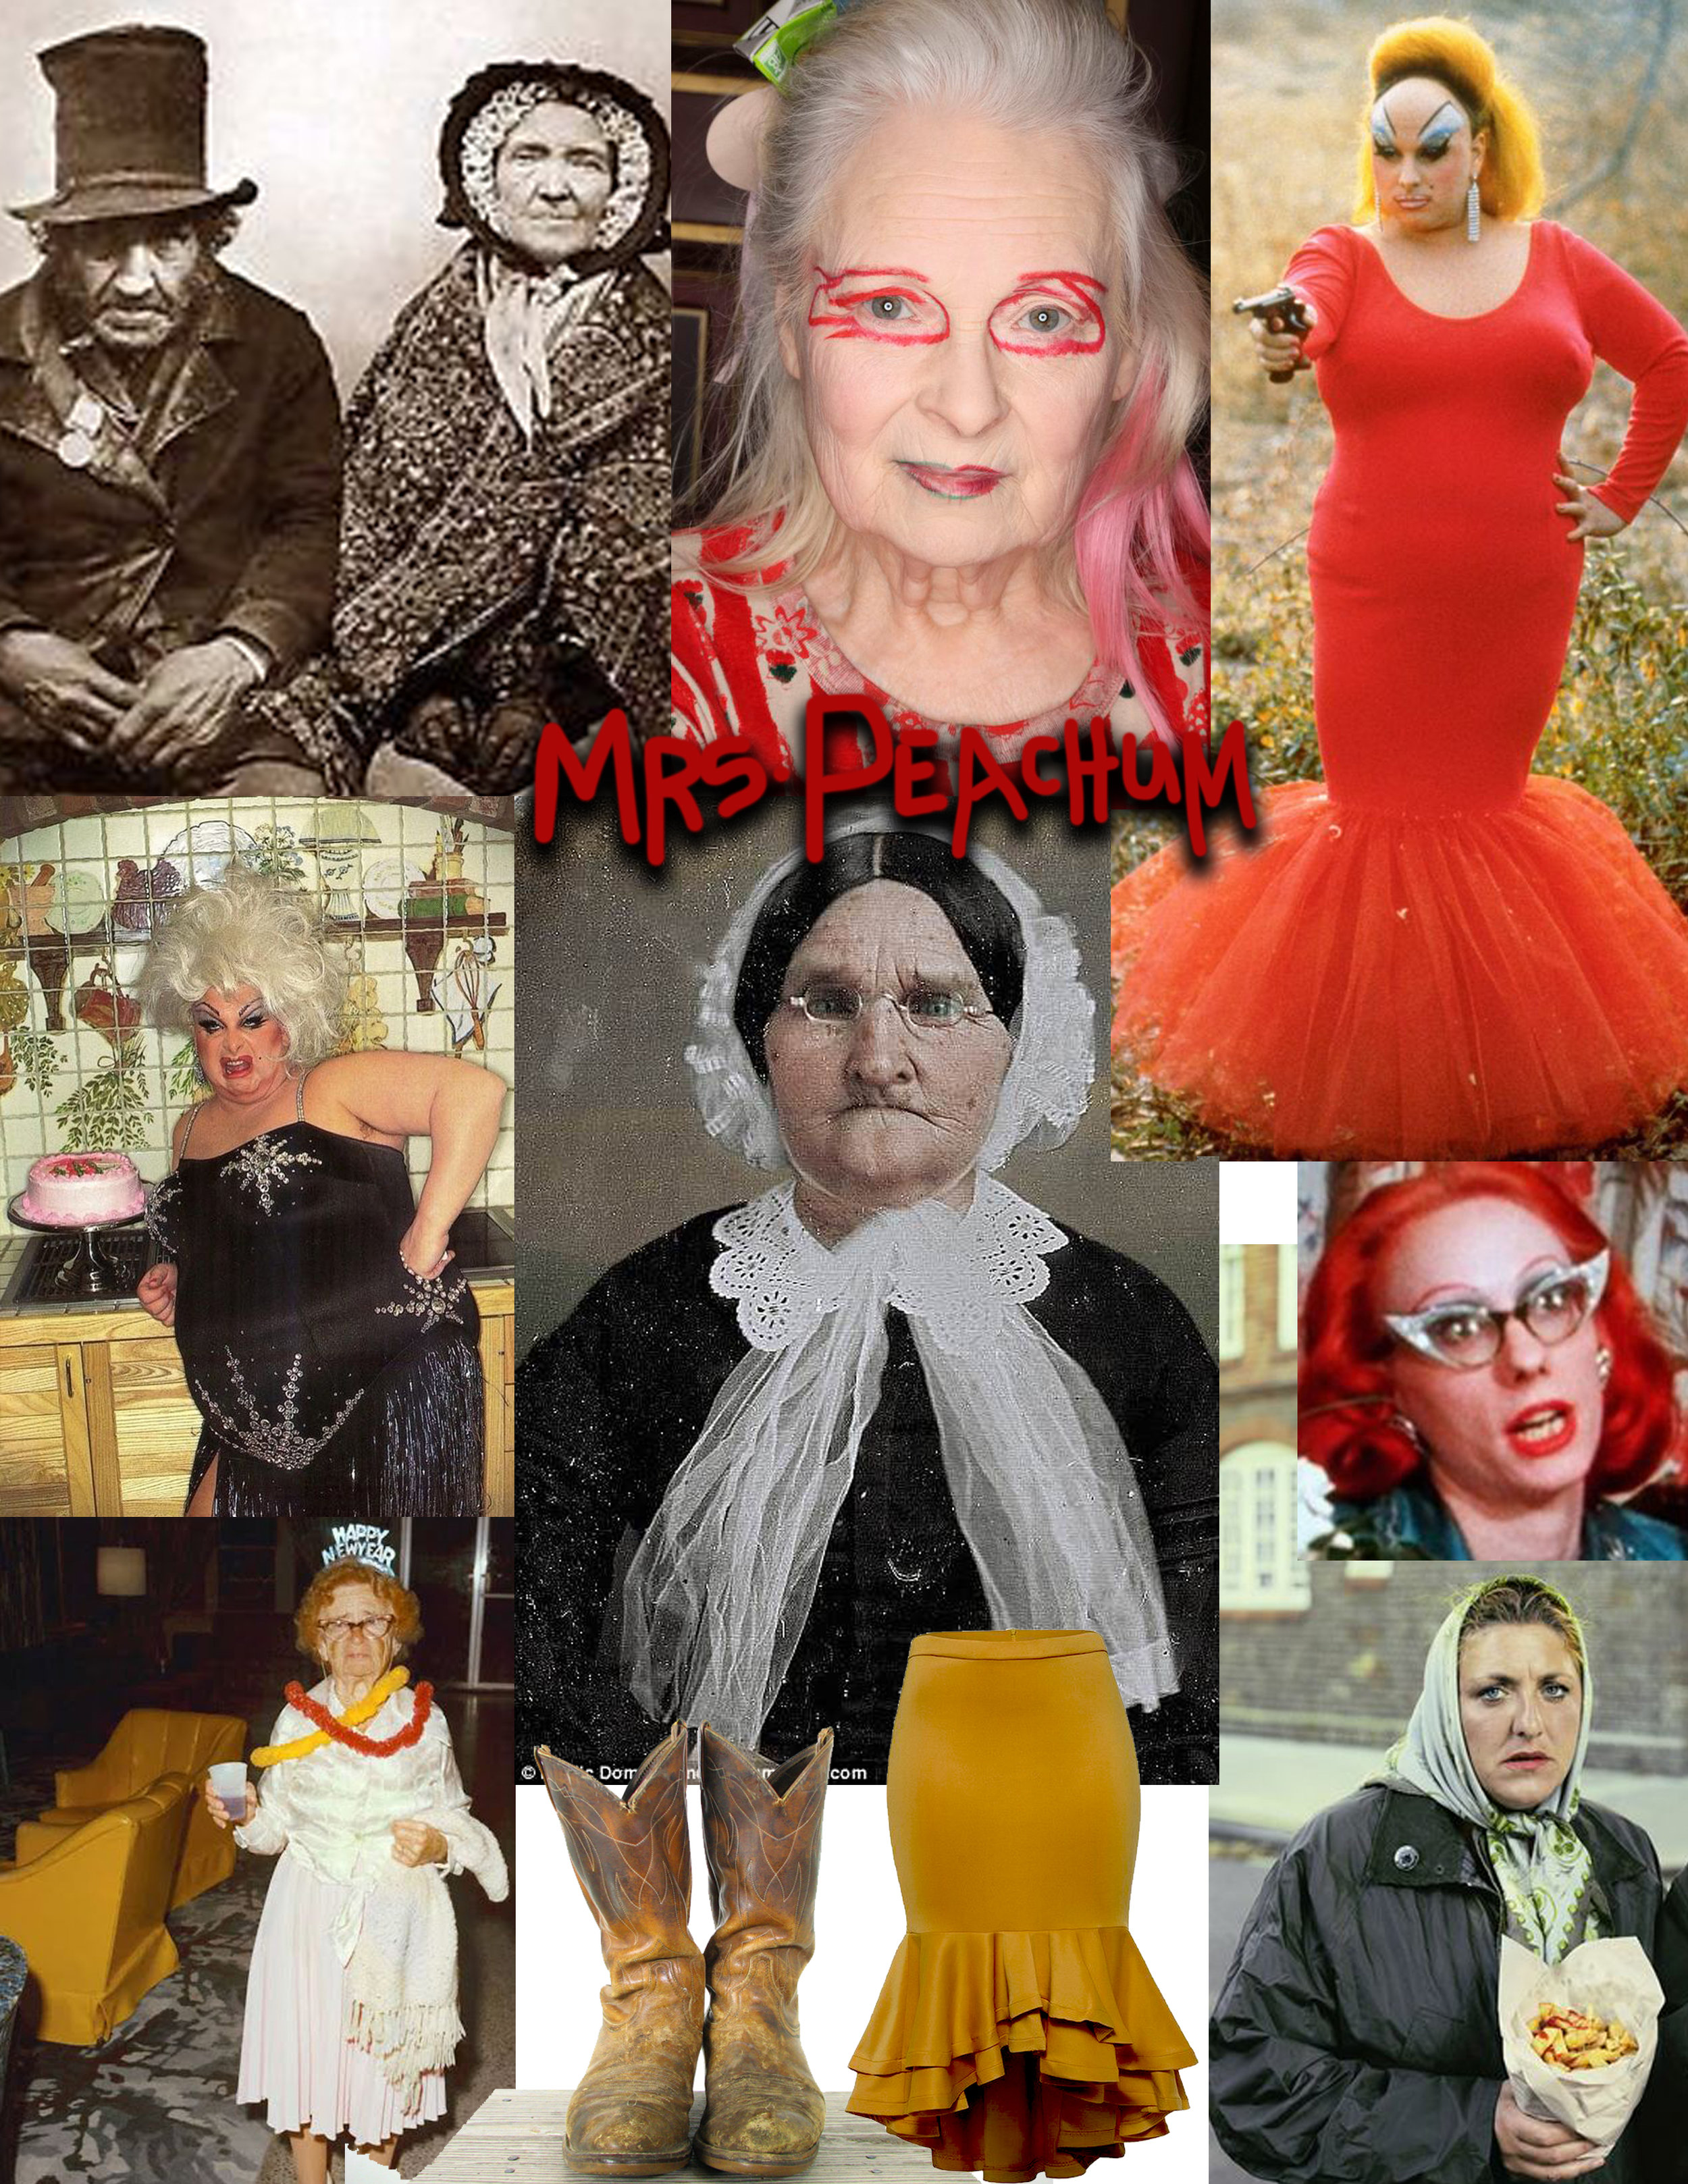 Inspiration collage for Mrs. Peachum